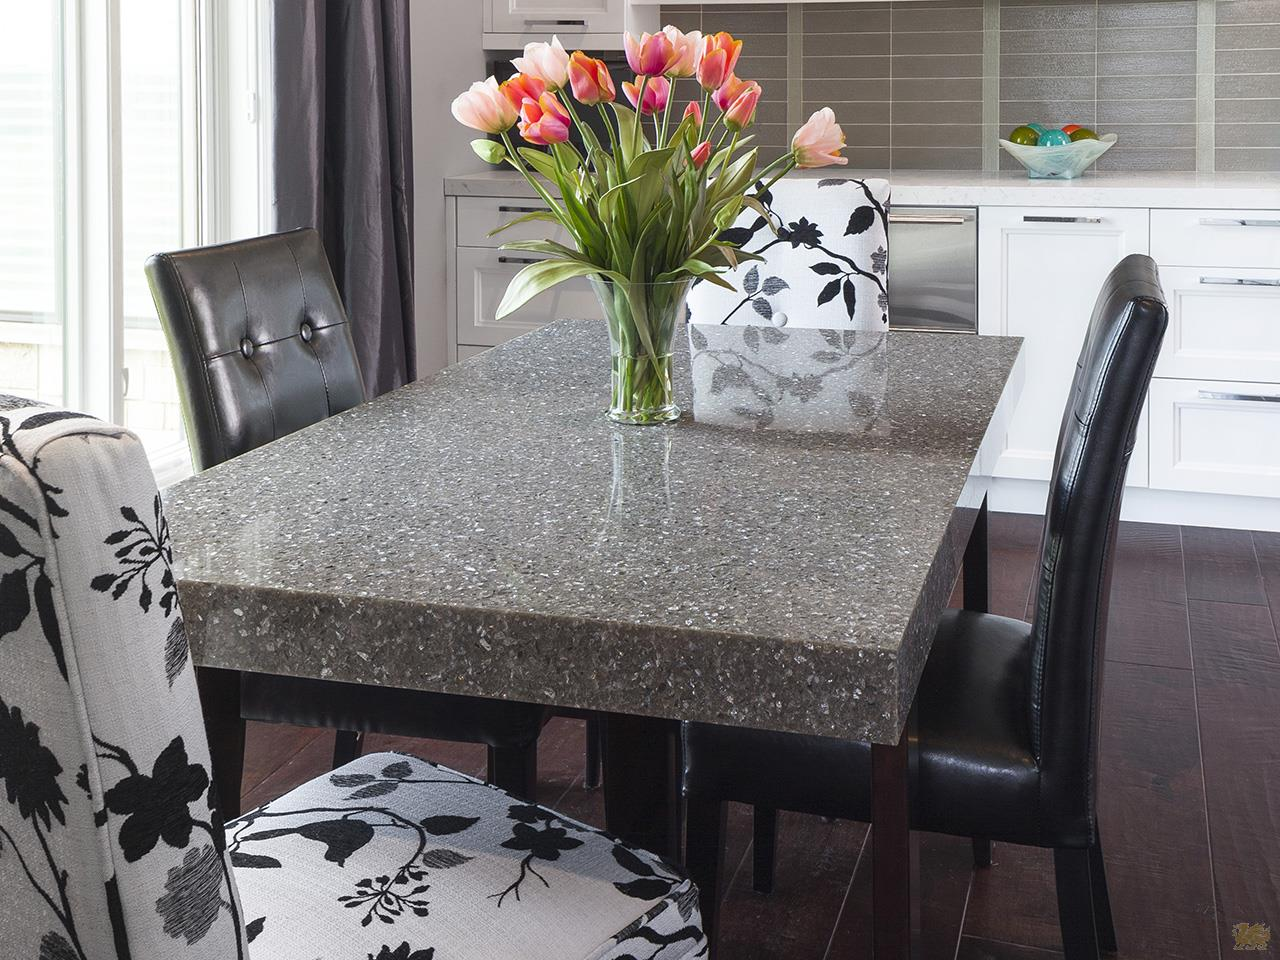 Madison_Minera_R_Kitchen_Table_001_12